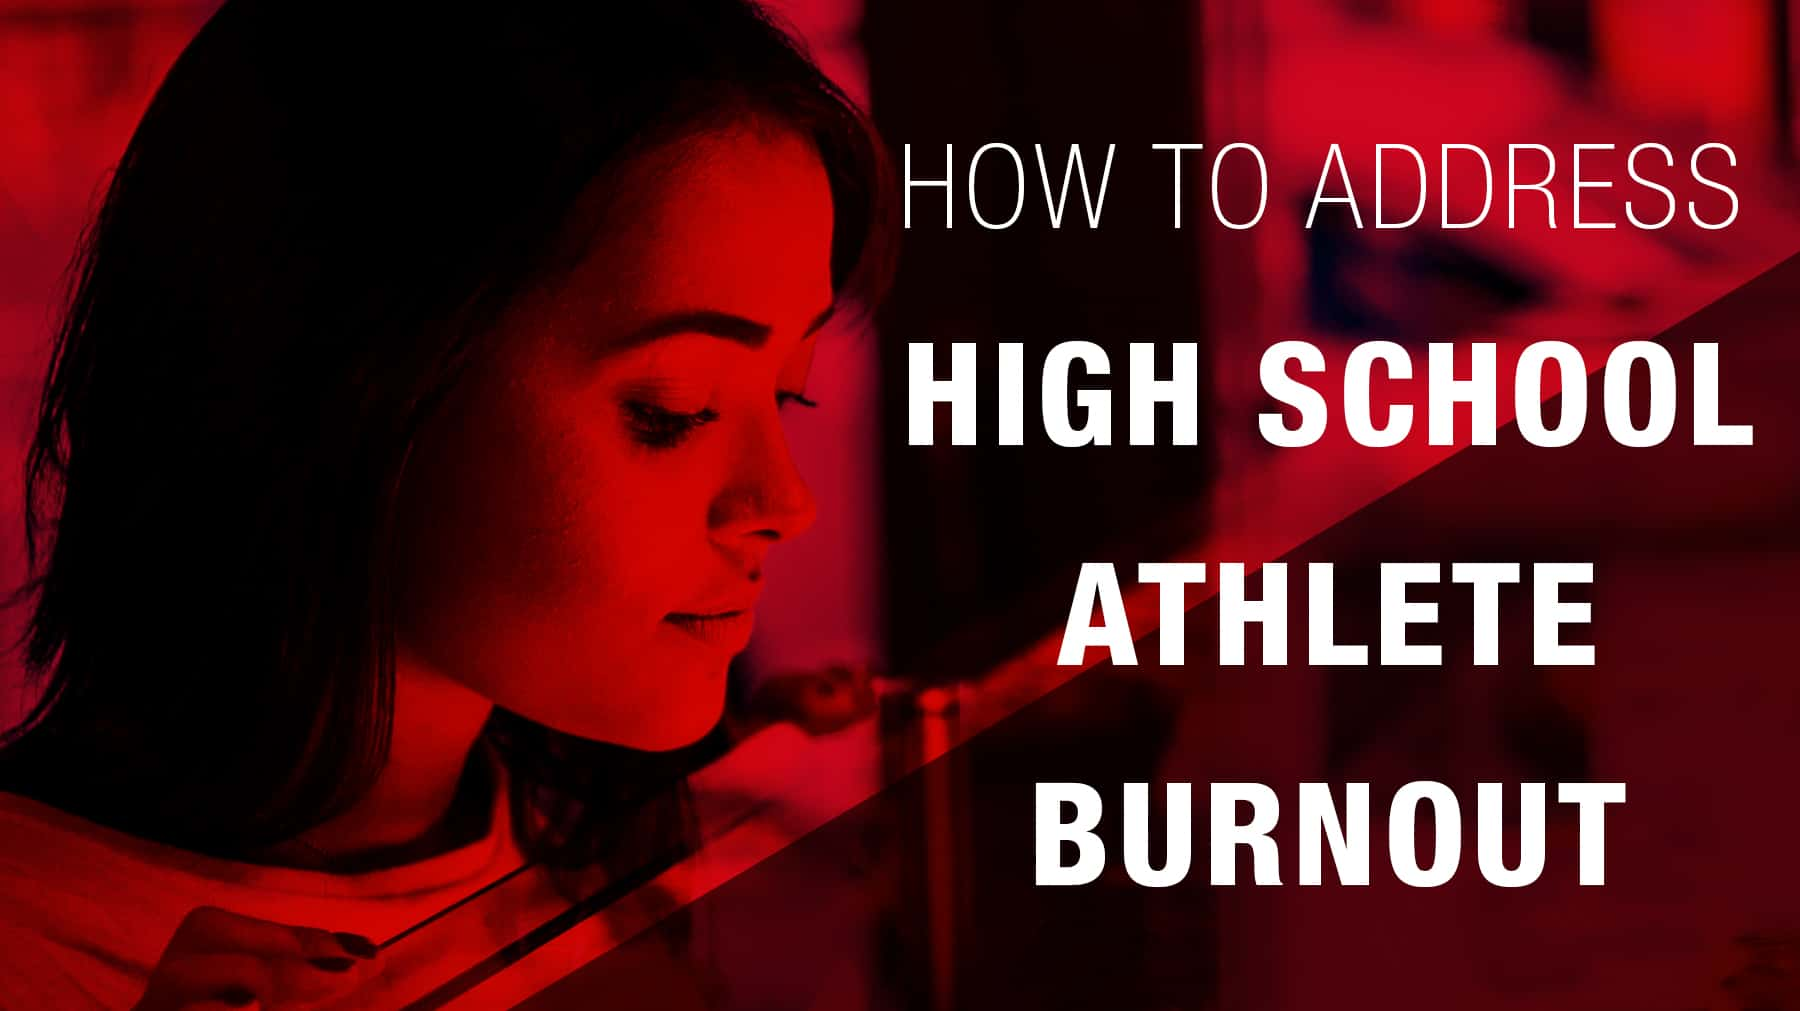 How to address high school athlete burnout